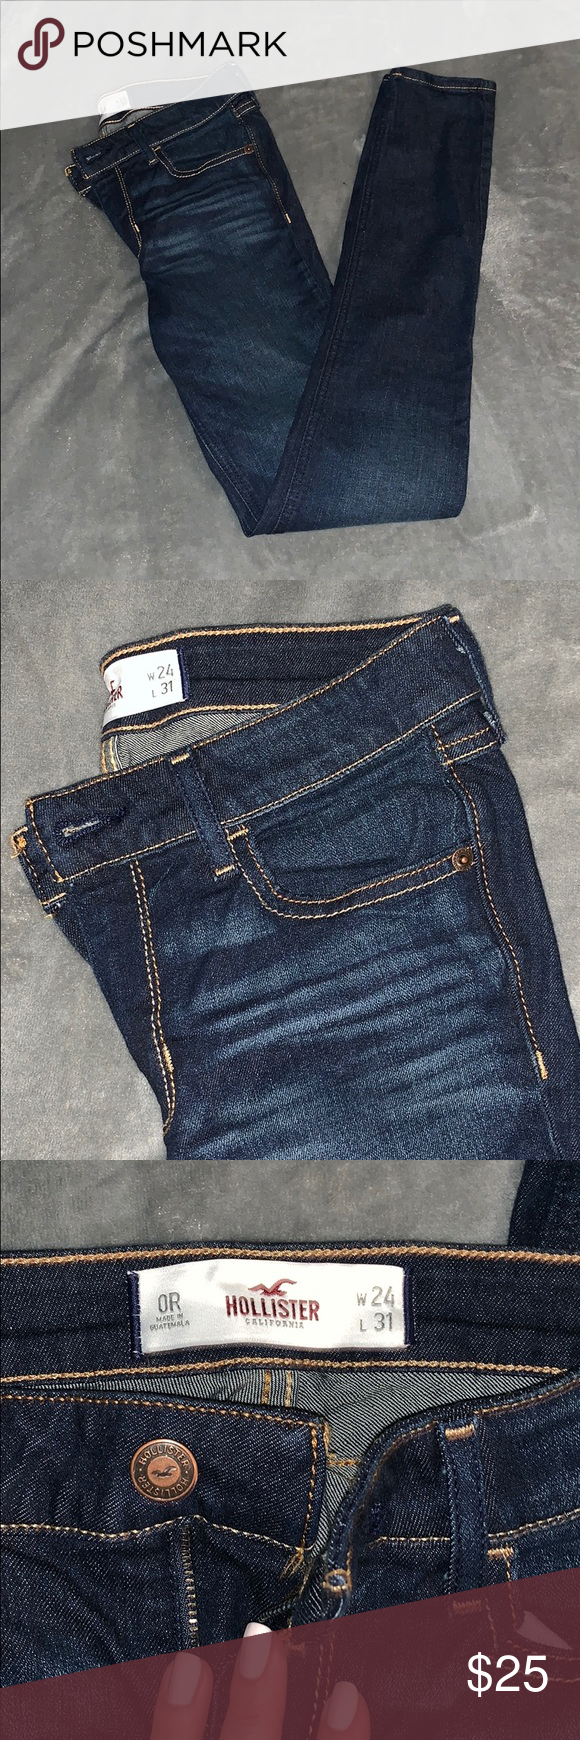 f6964c37742 Hollister Dark Wash Skinny Jeans Blue Denim NWOT Never worn, ripped the  tags off but they're too long. Size 0R (regular). Hollister Jeans Skinny